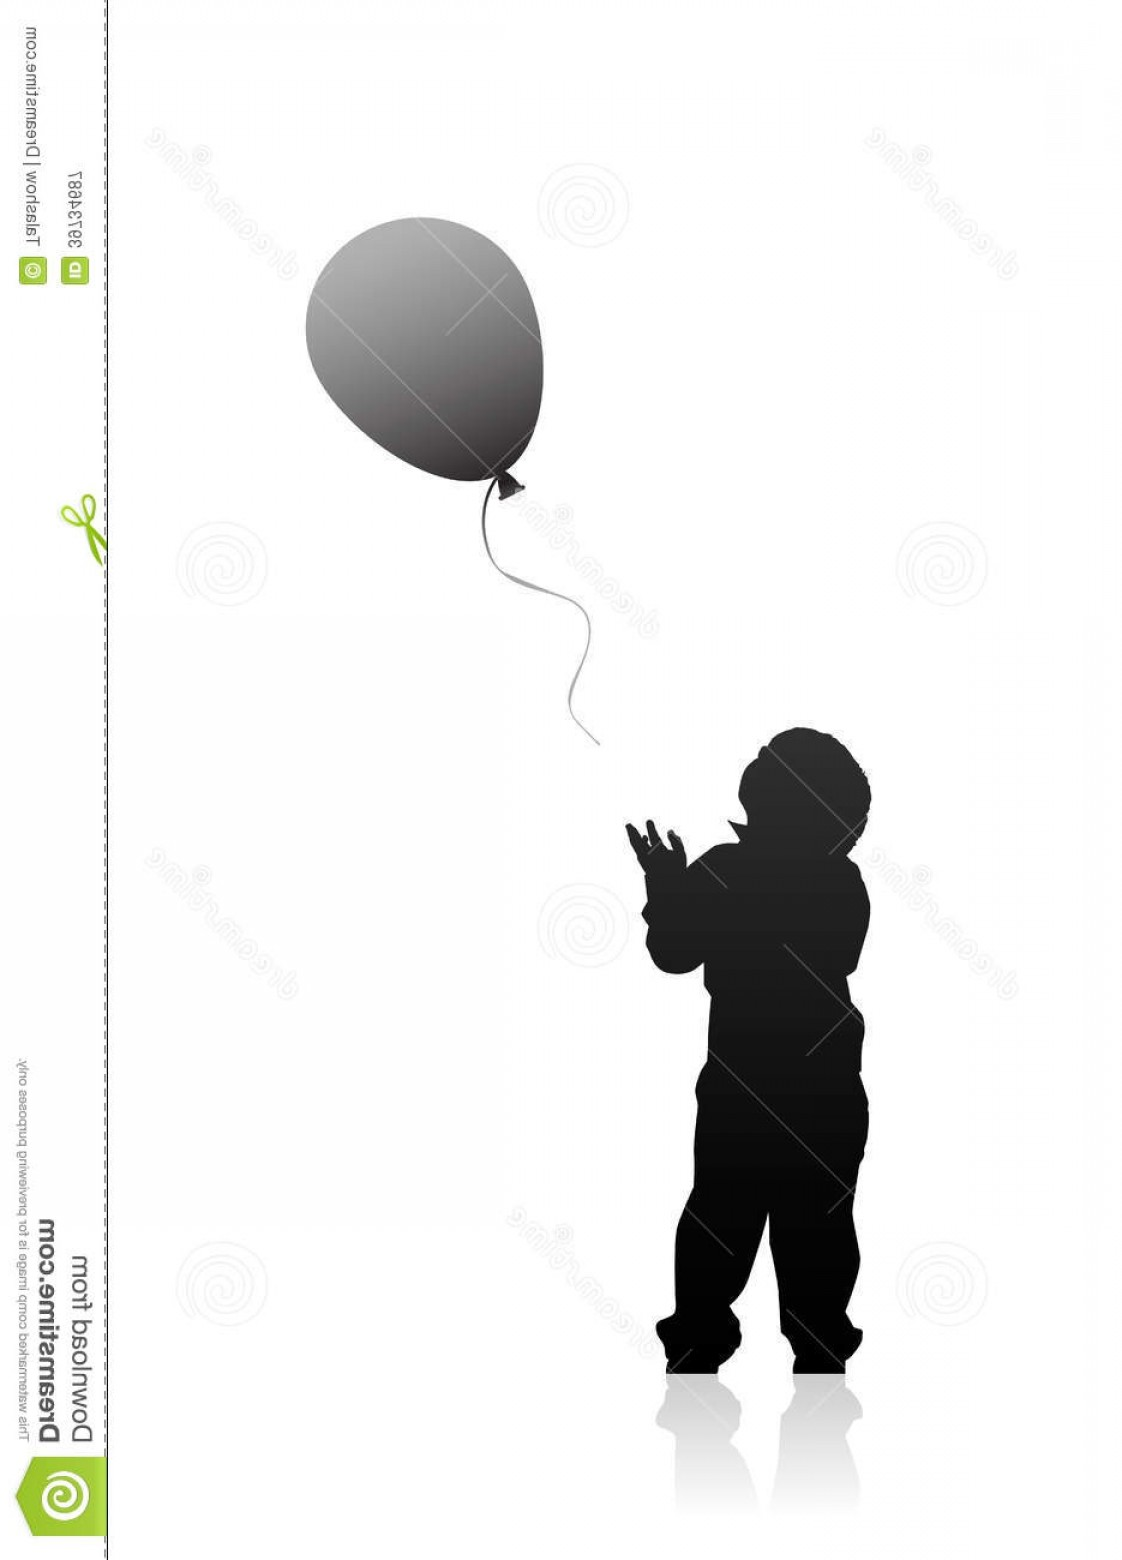 Little Boy Silhouette Vector: Royalty Free Stock Photography Silhouette Boy Balloon Vector Illustration Little Issuing Image